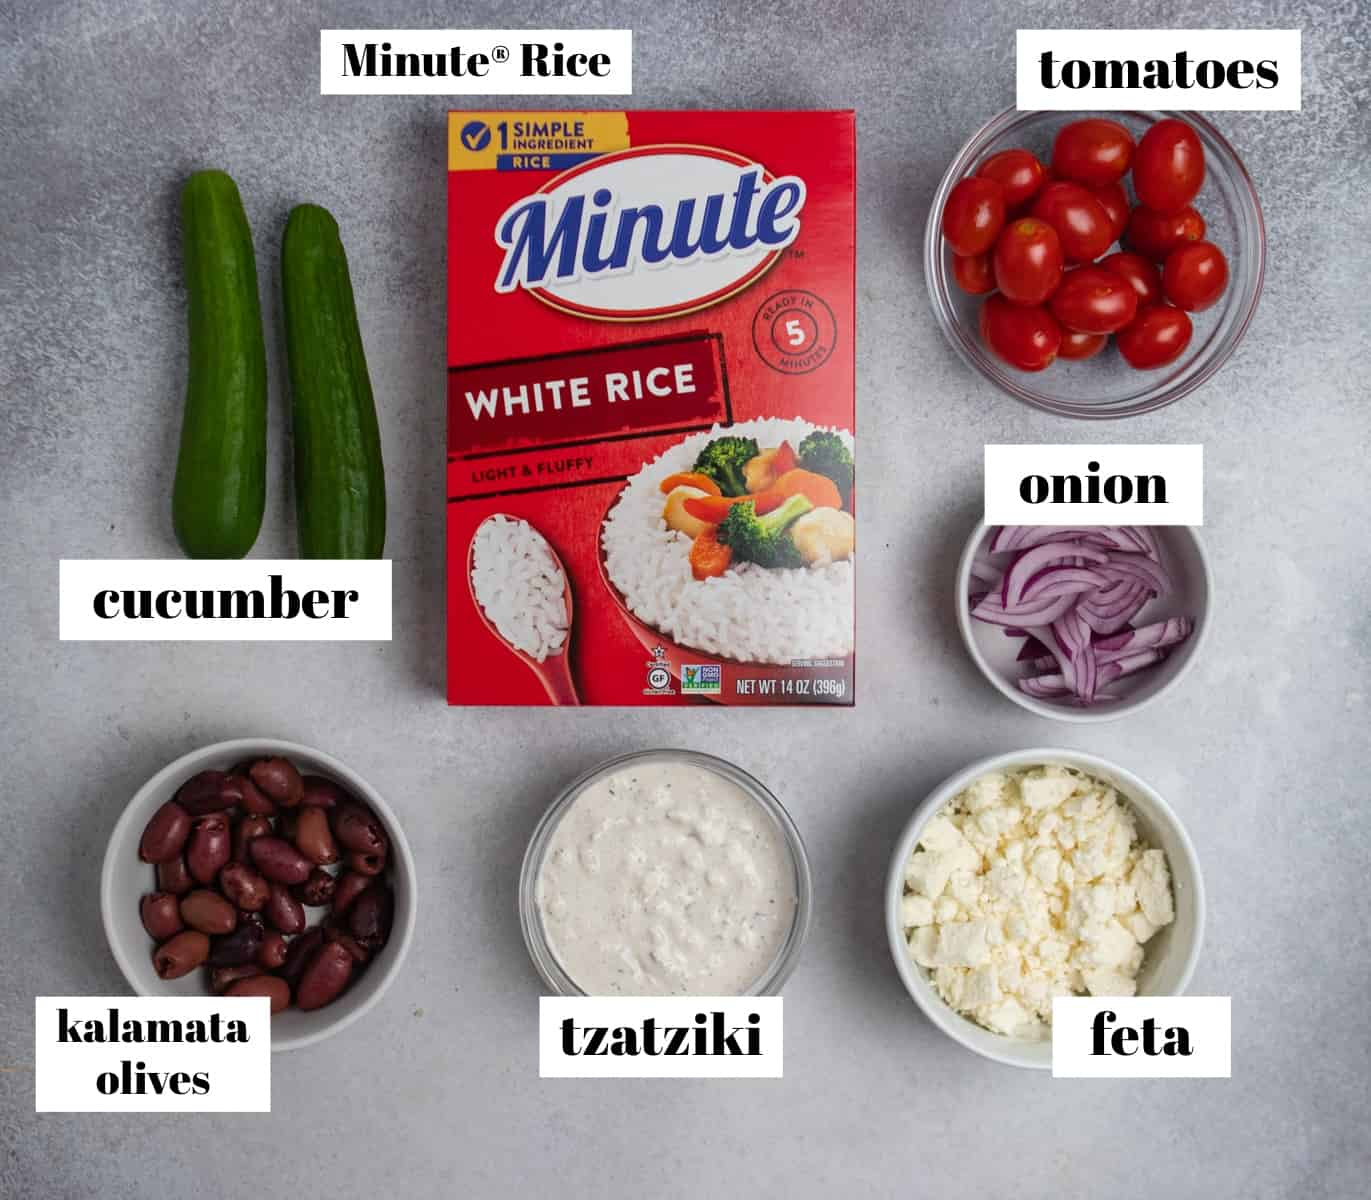 Rice, cucumbers, onion, feta, tzatziki and other ingredients labeled on counter.